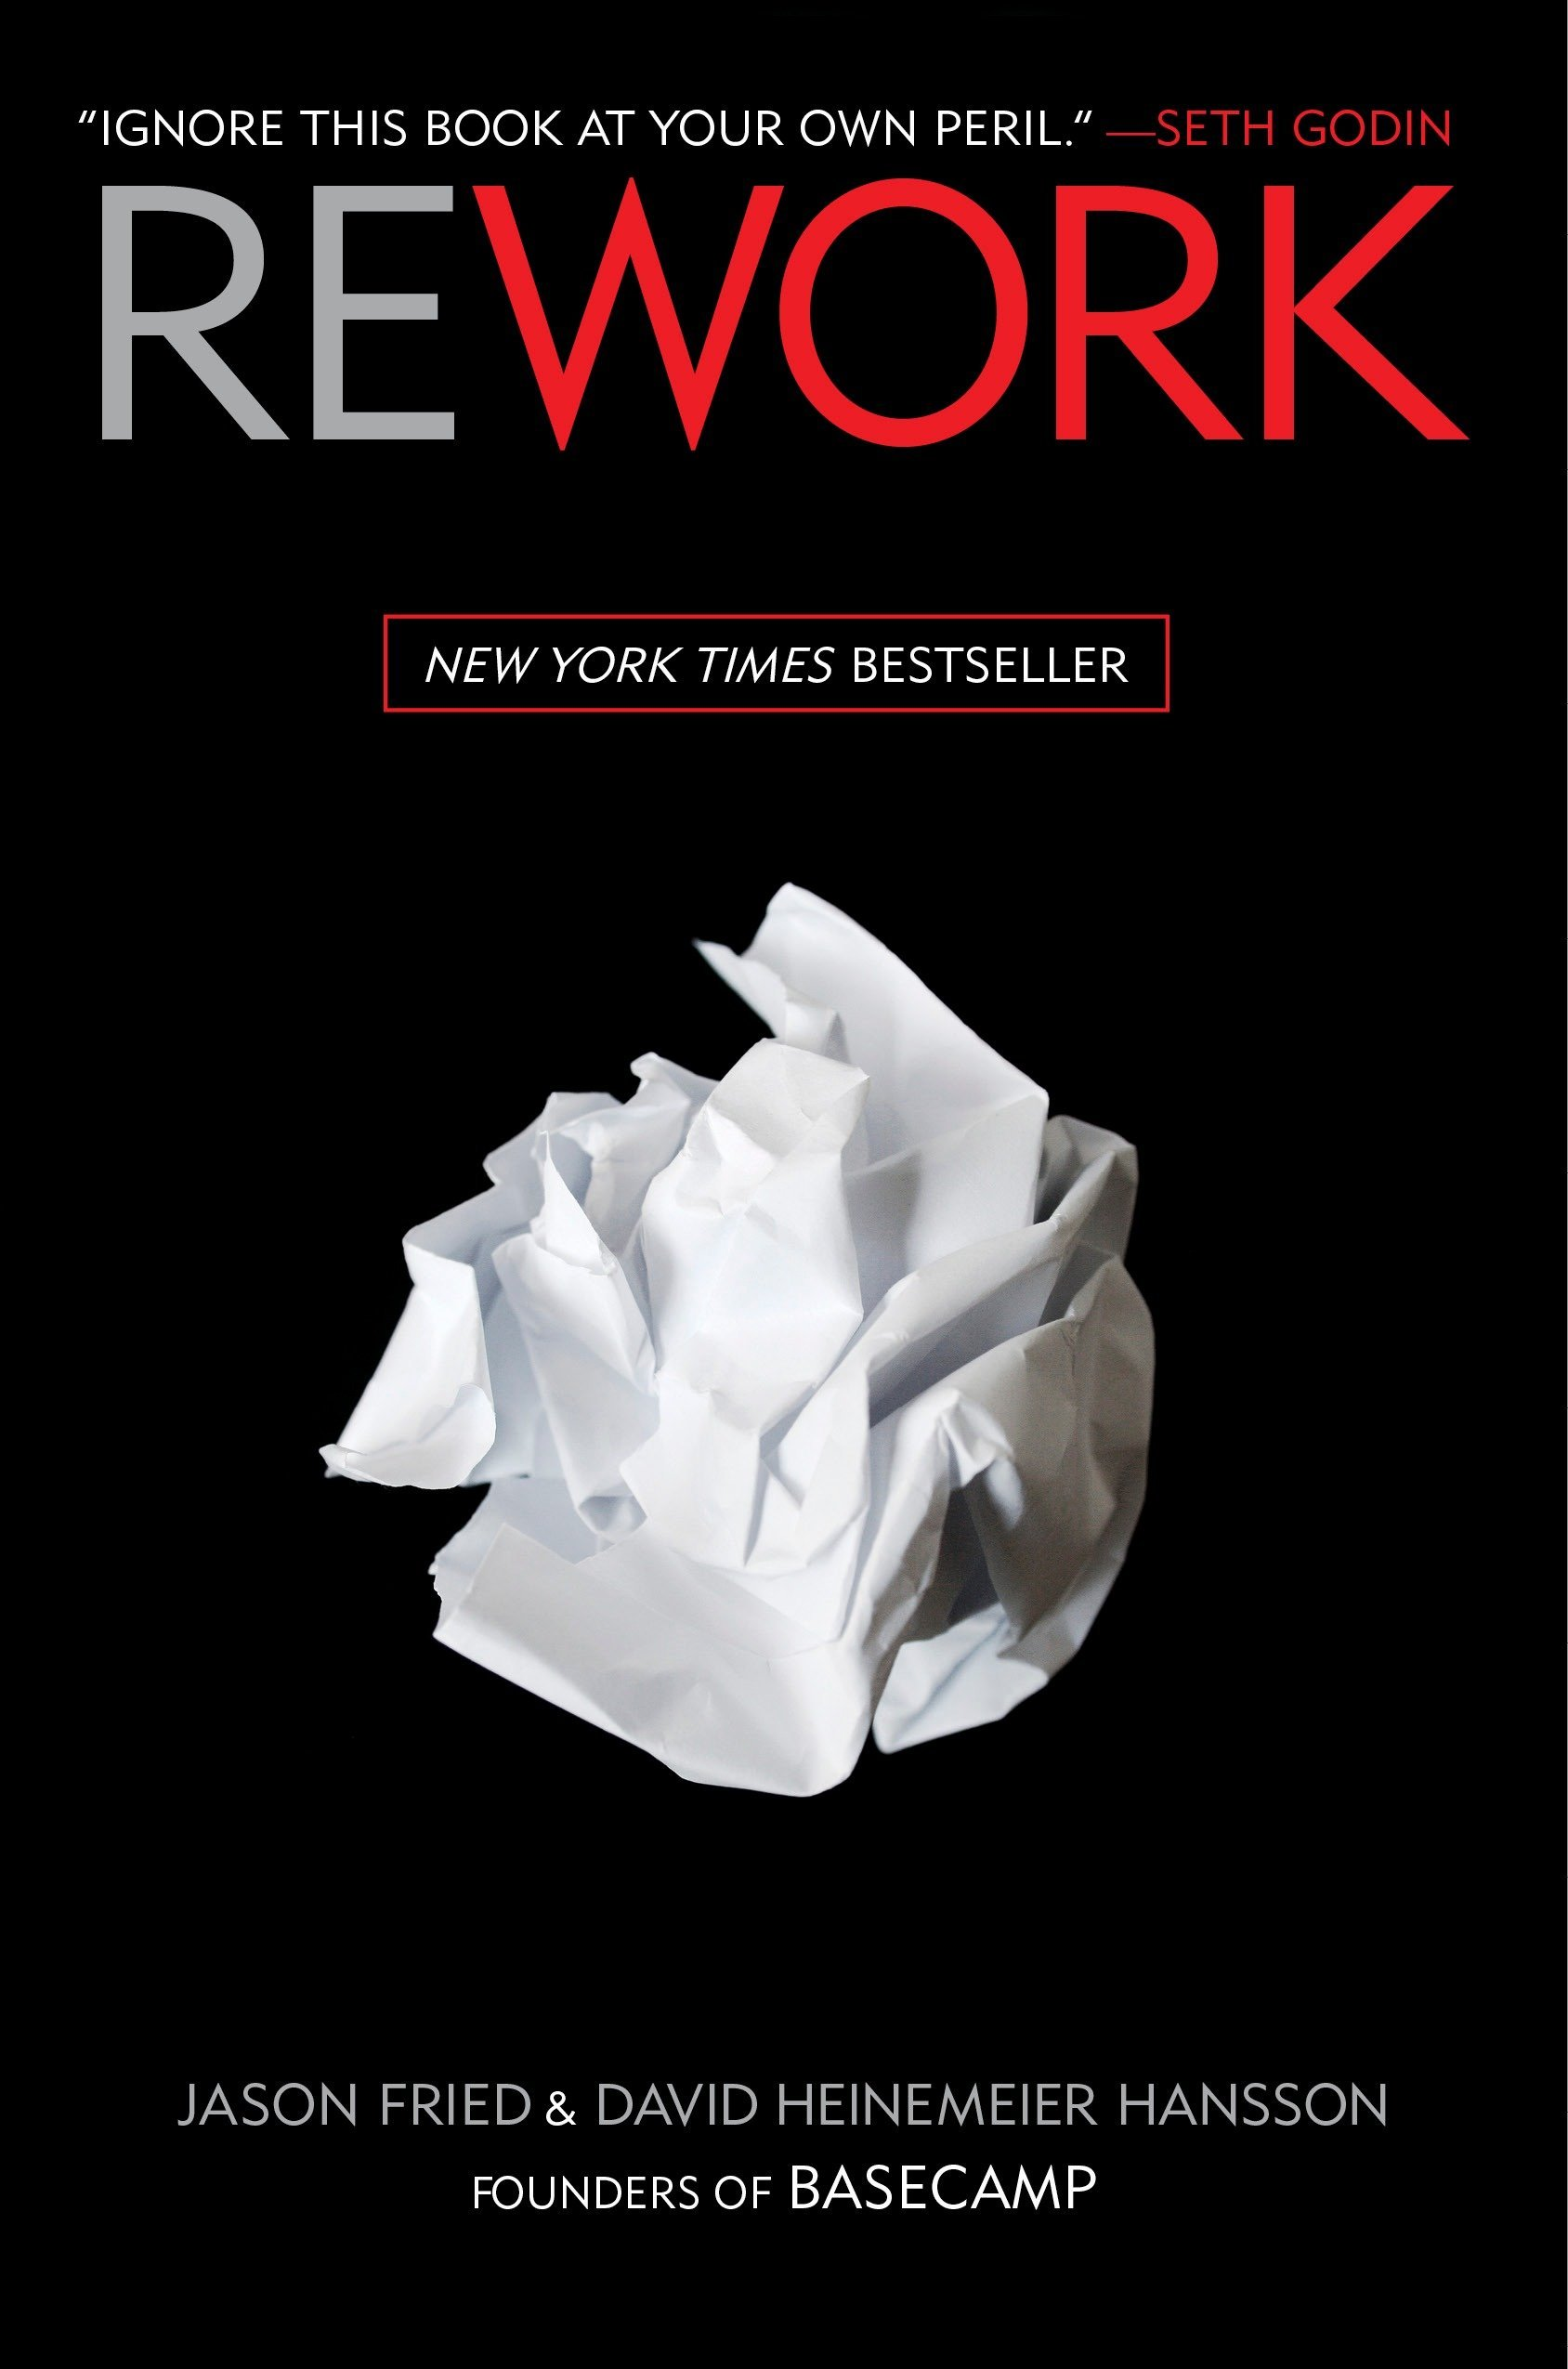 Rework - Jason Fried,  David Heinemeier Hansson- reviews for audiobook - reviews, quotes, summary